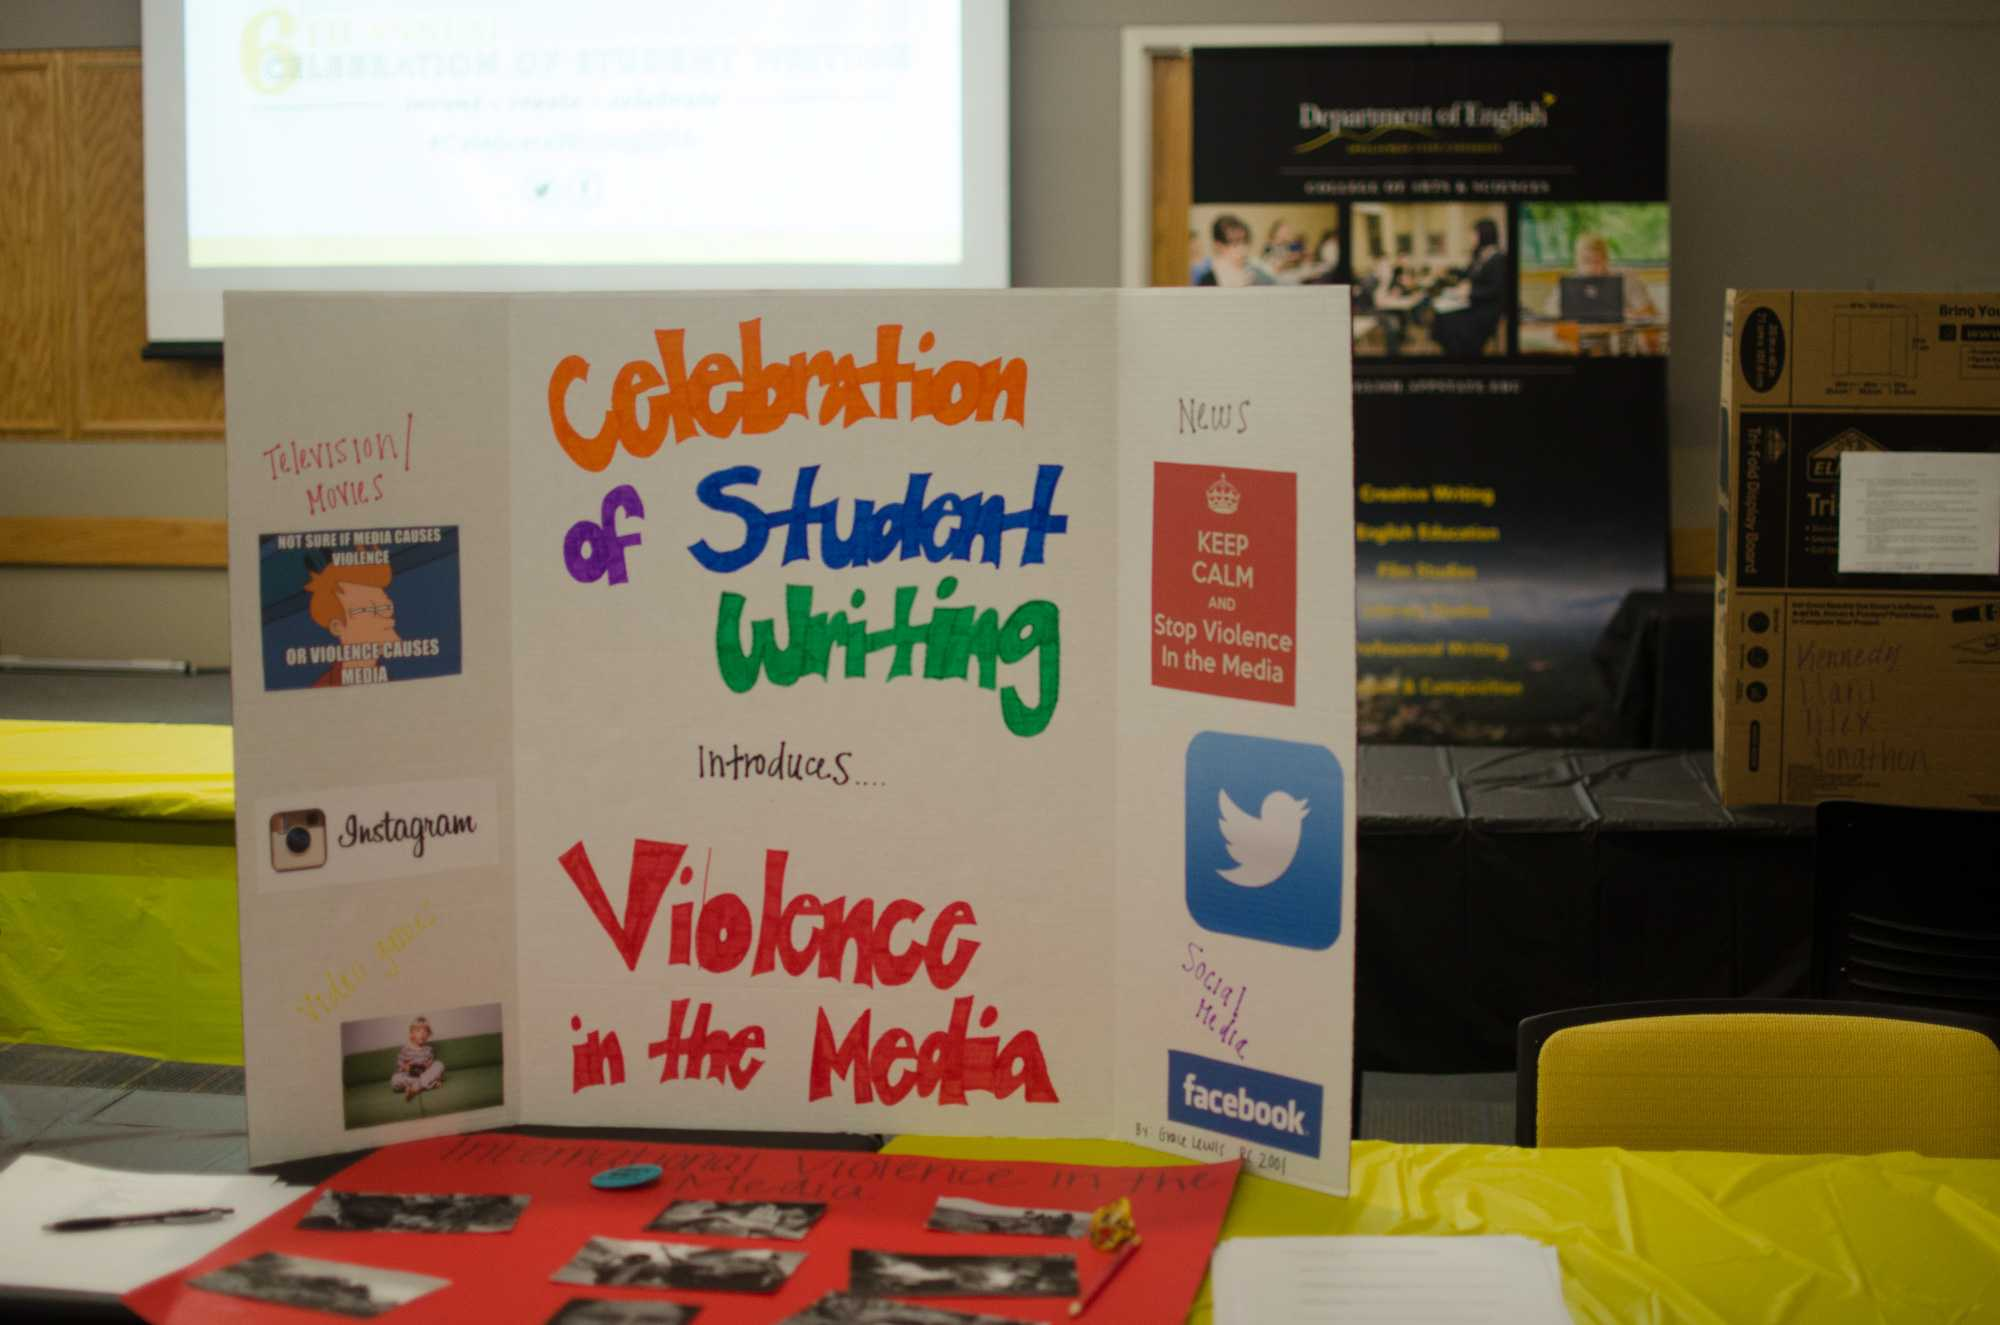 Students share their work at sixth annual Celebration of Student Writing